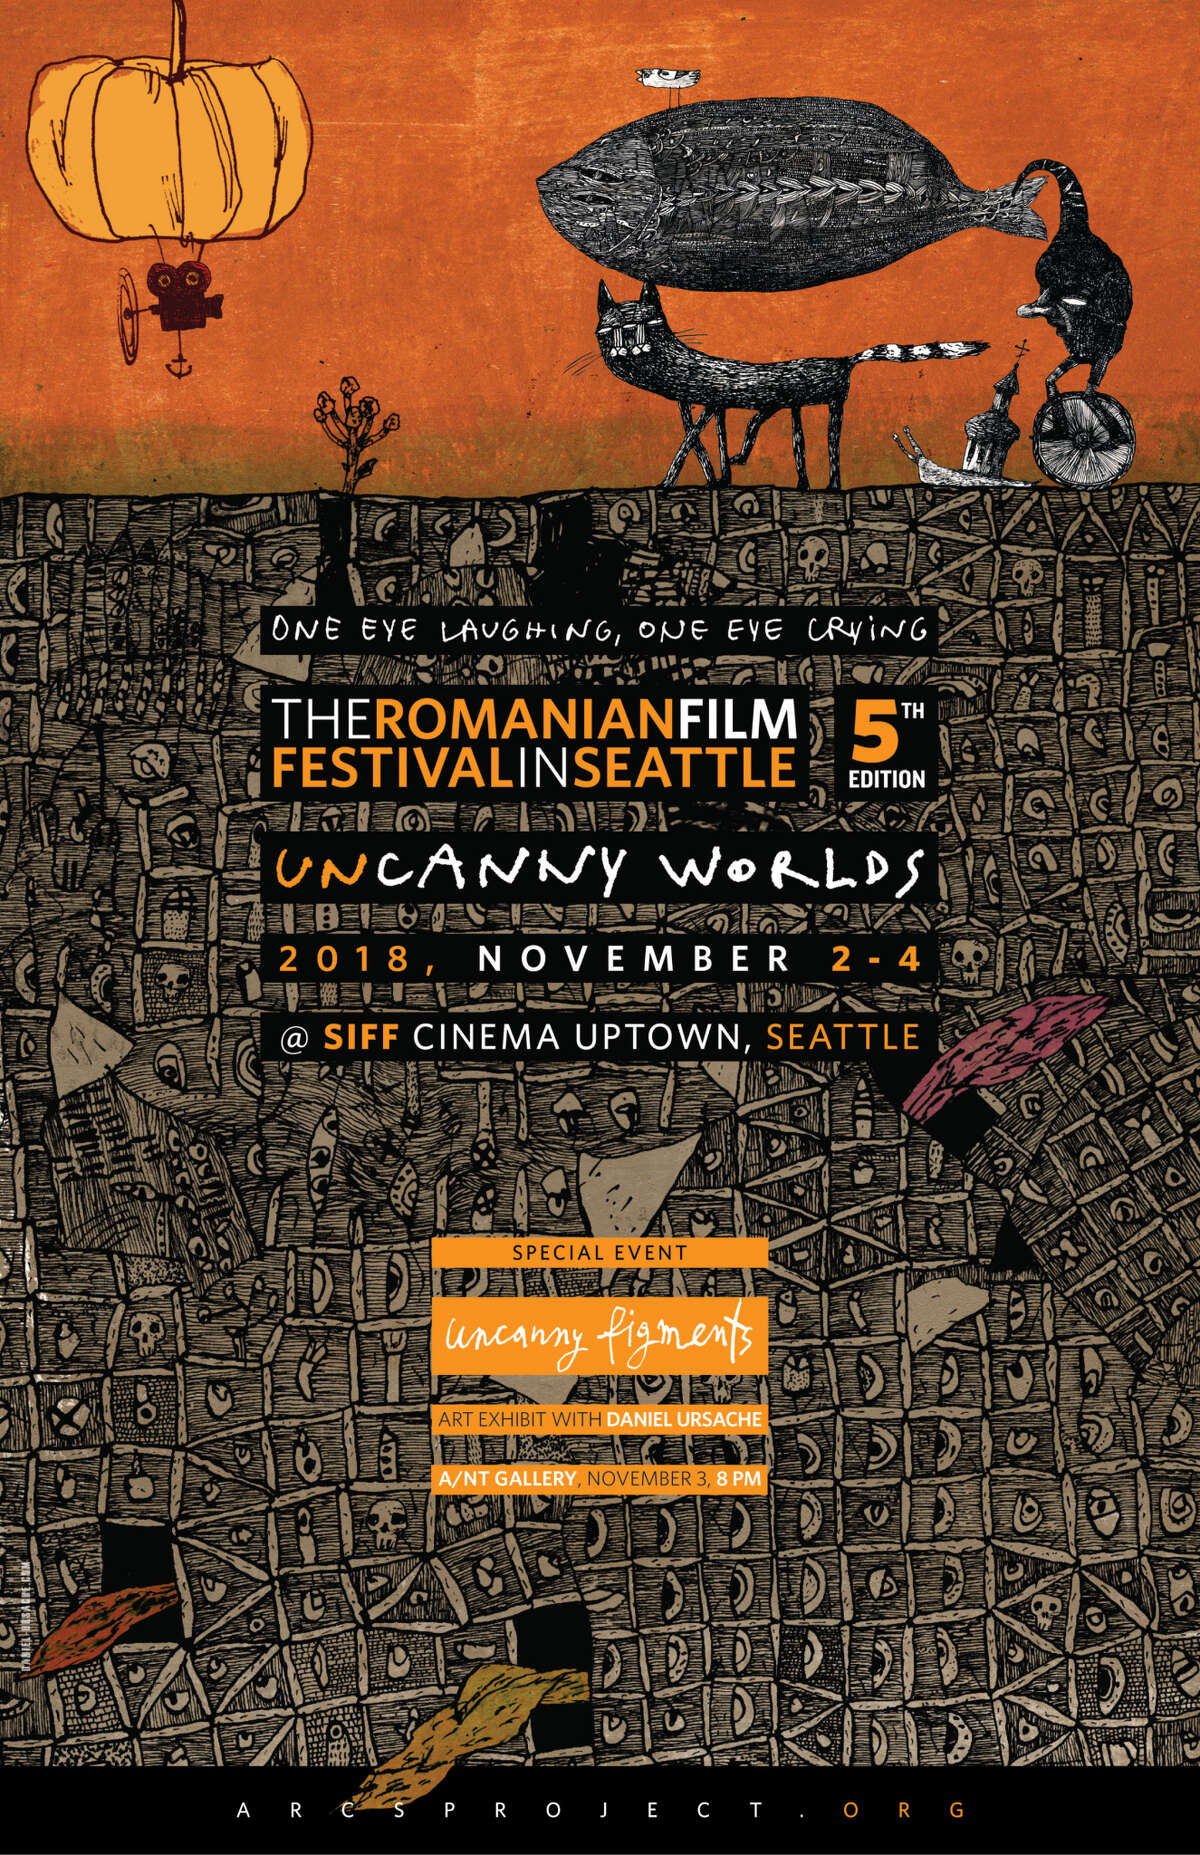 Now in its fifth year, the Romanian Film Festival in Seattle has grown from the Film Center to Uptown.